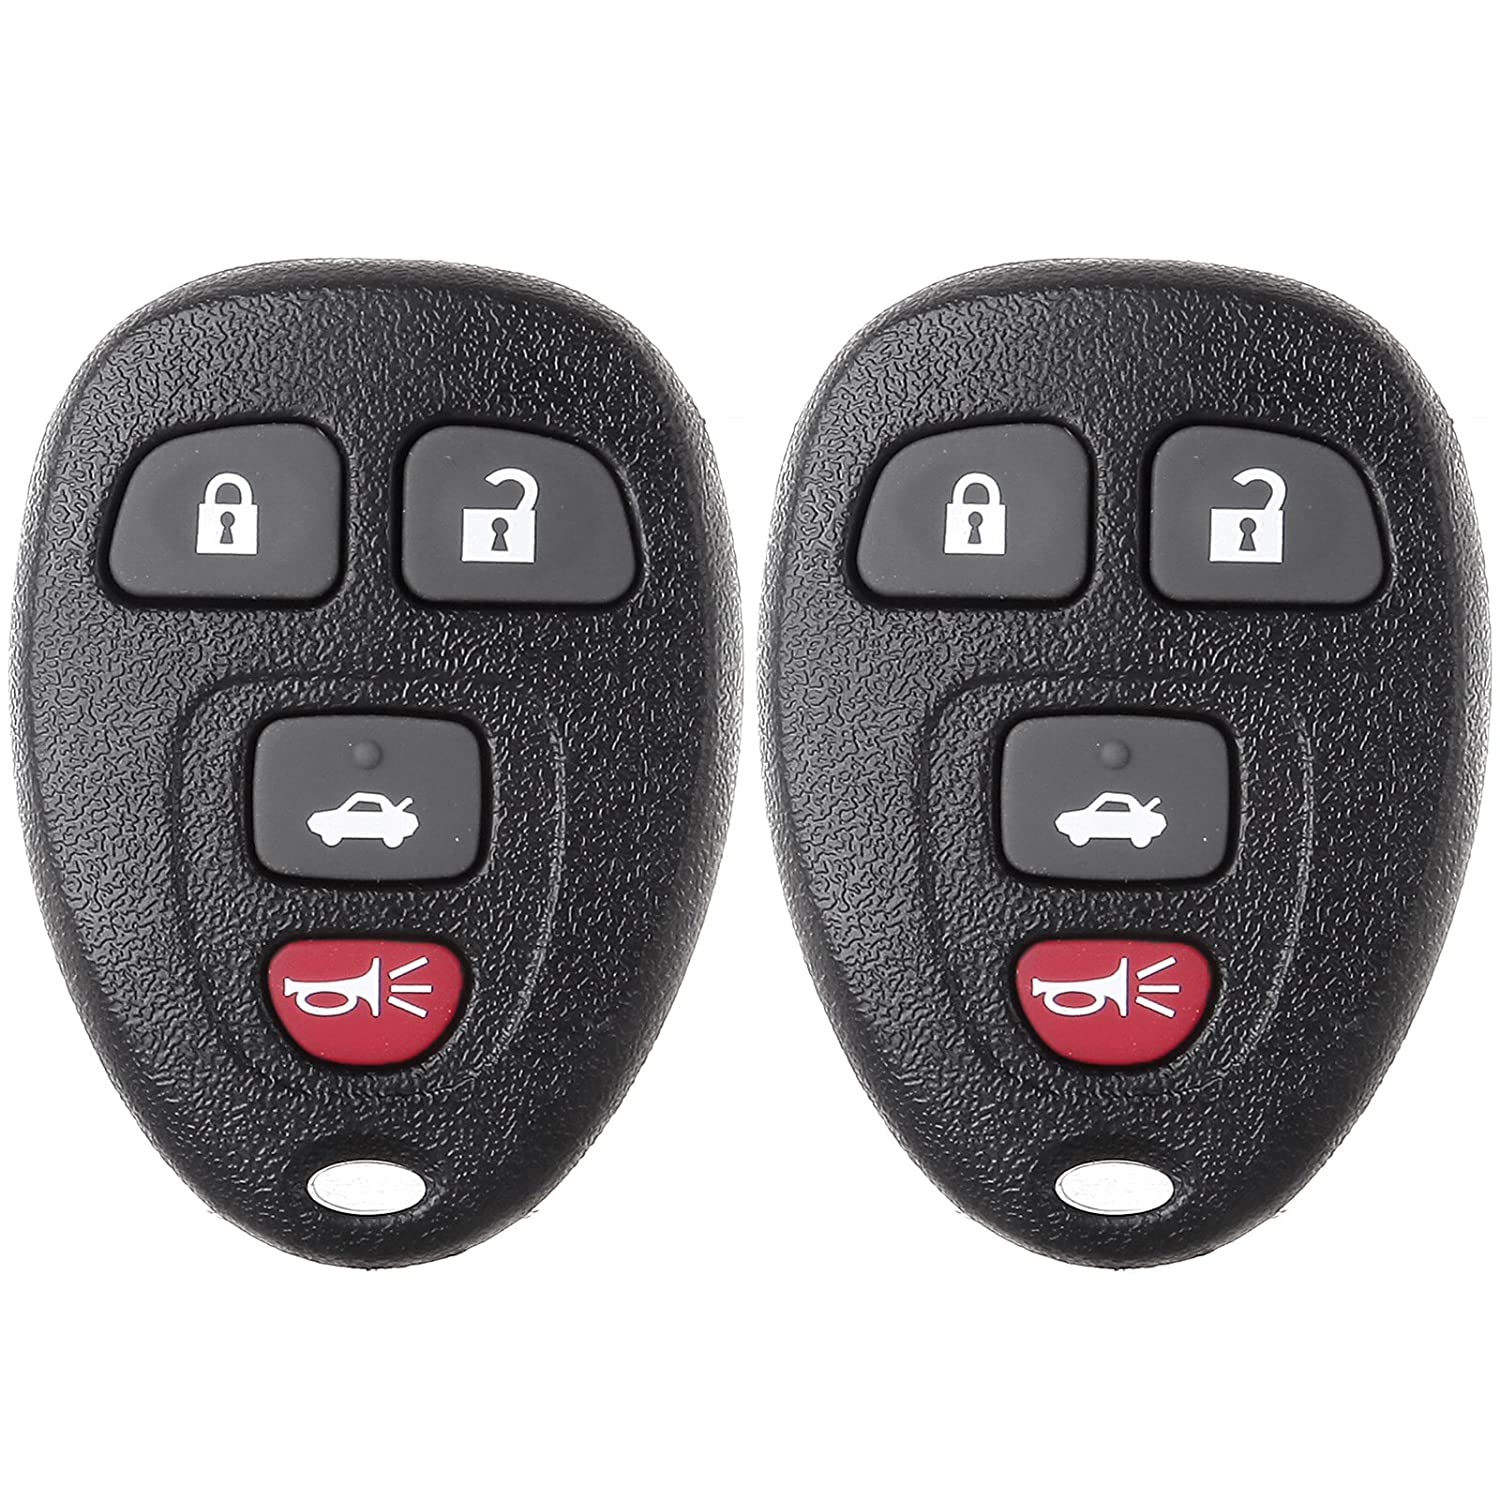 SCITOO 2 New Keyless Entry Remote Car Key Fob 4 Buttons Replacement fit Buick Lucerne Cadillac DTS Chevy Impala Monte Carlo OUC60270 991118-5206-1753302